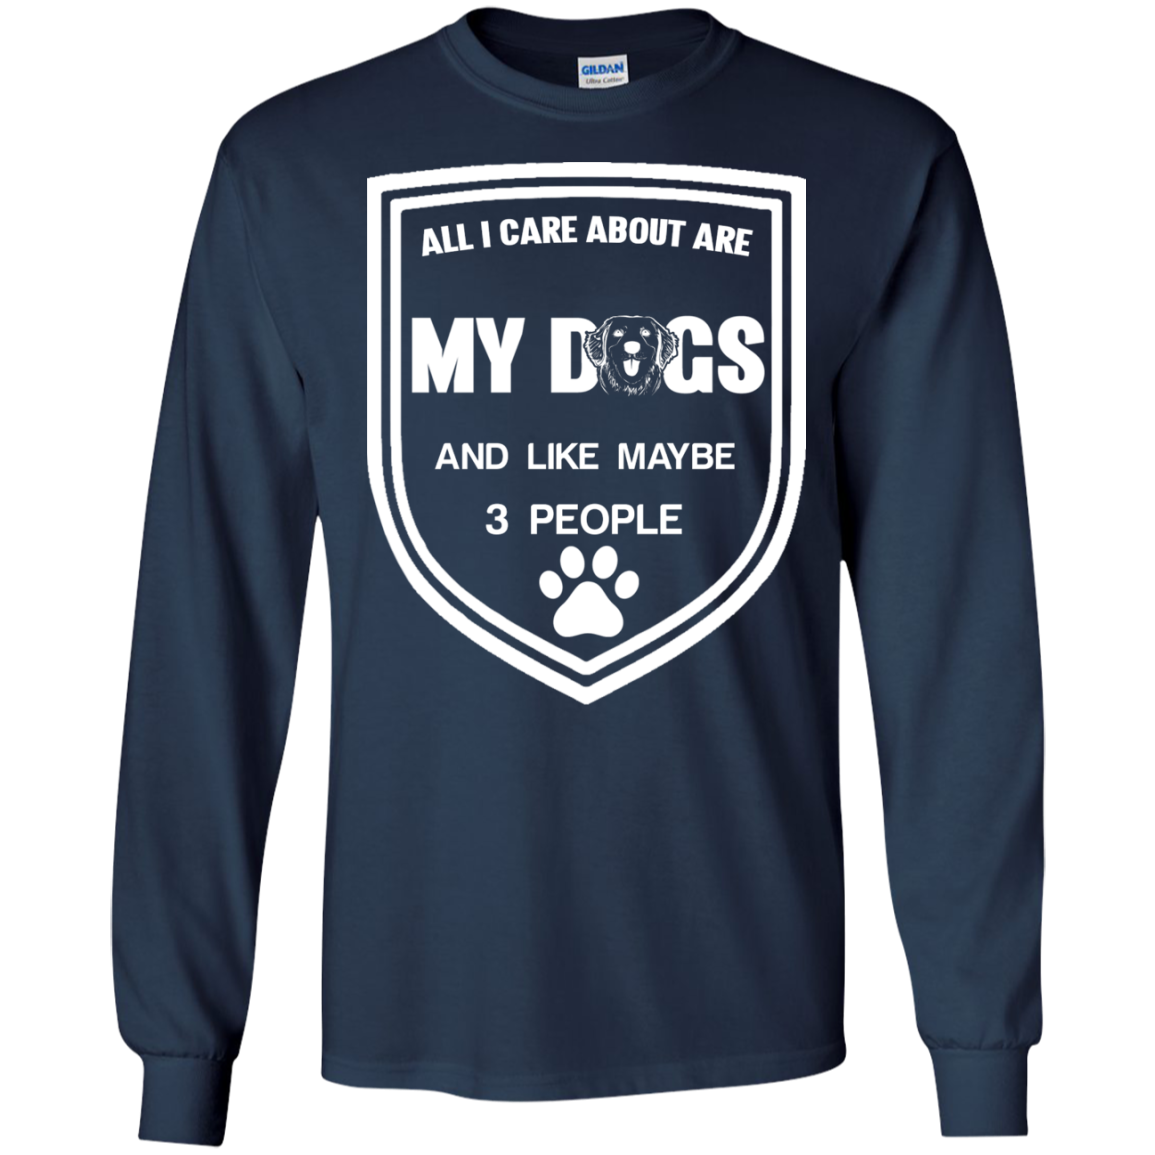 All I Care About Are My Dogs And Like Maybe 3 People T-Shirts & Hoodies - The Sun Cat